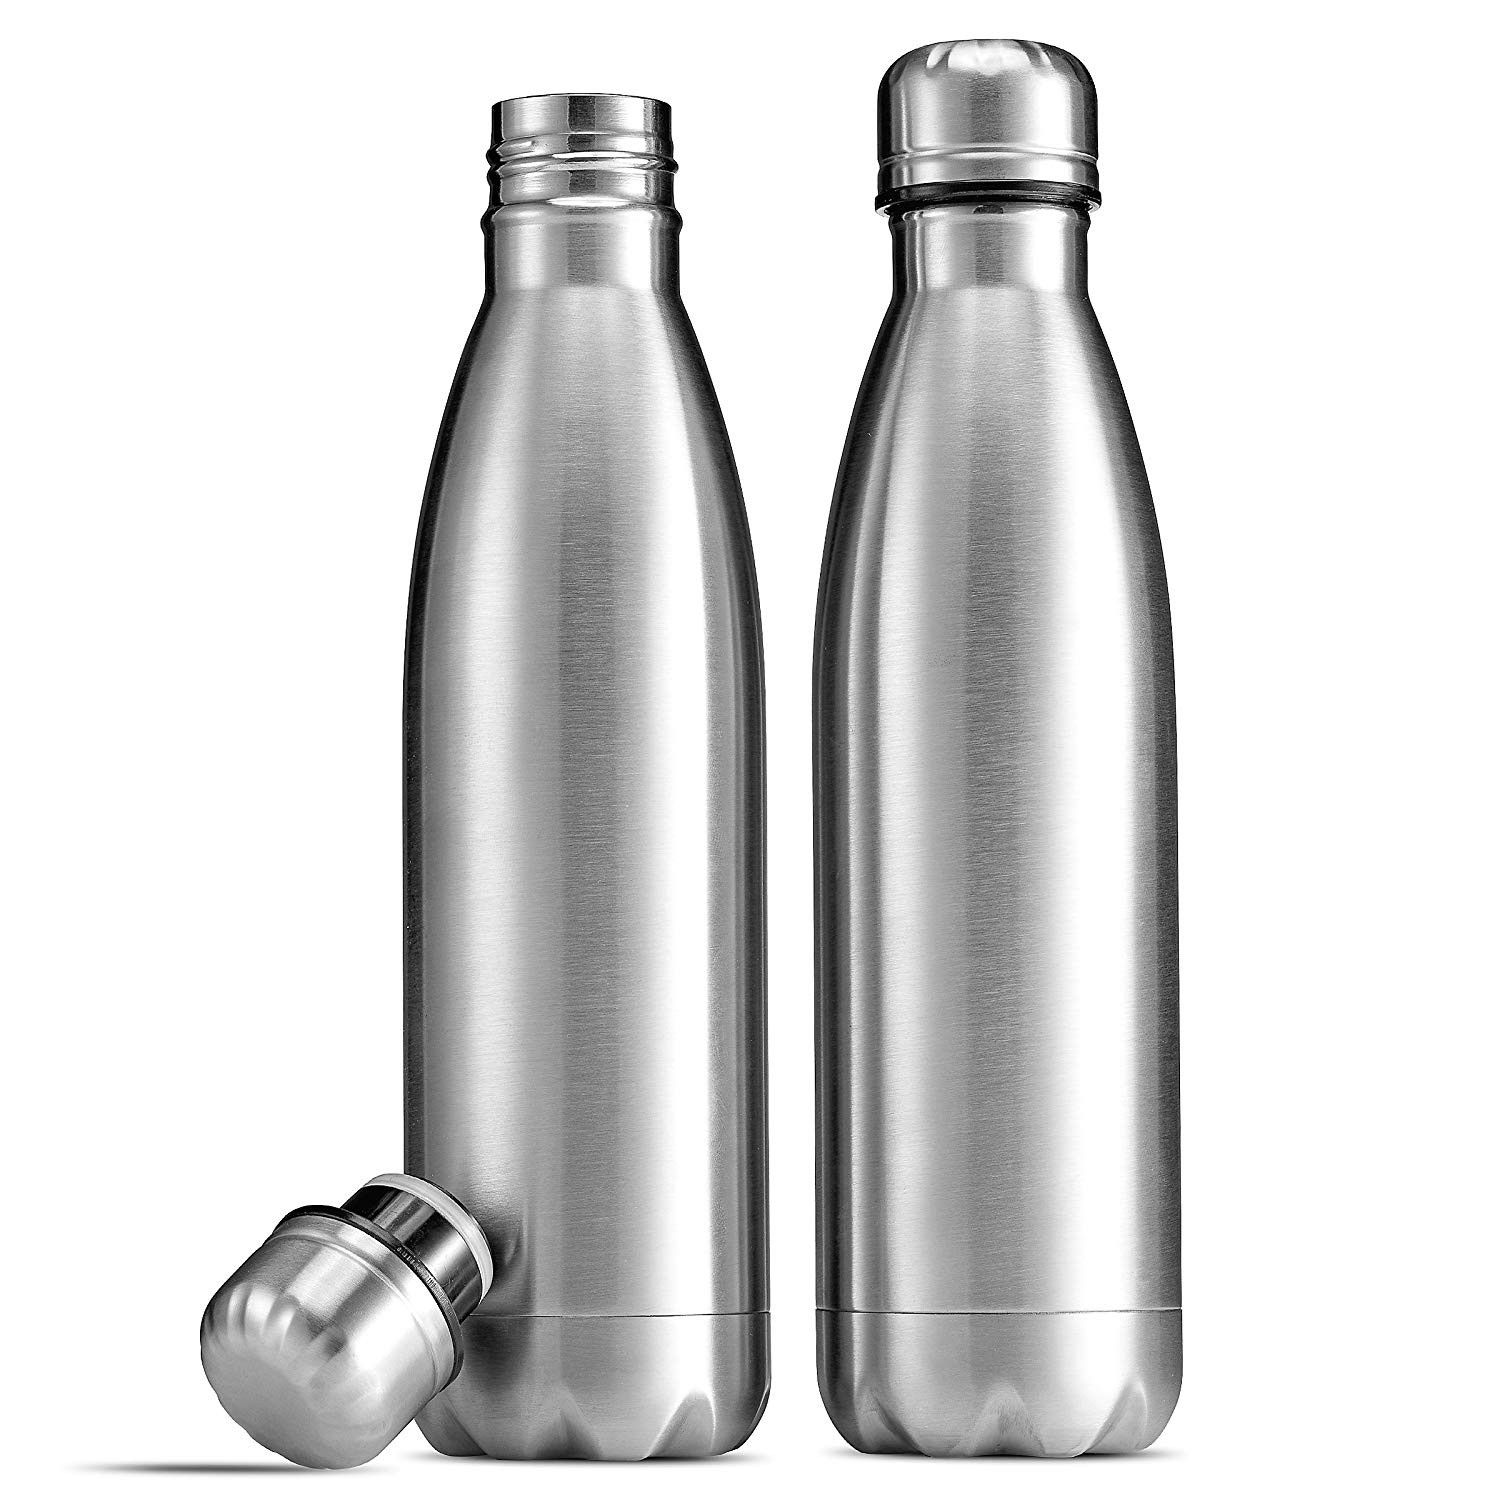 Top 5 Best Stainless Steel Water Bottles in 2020 Review